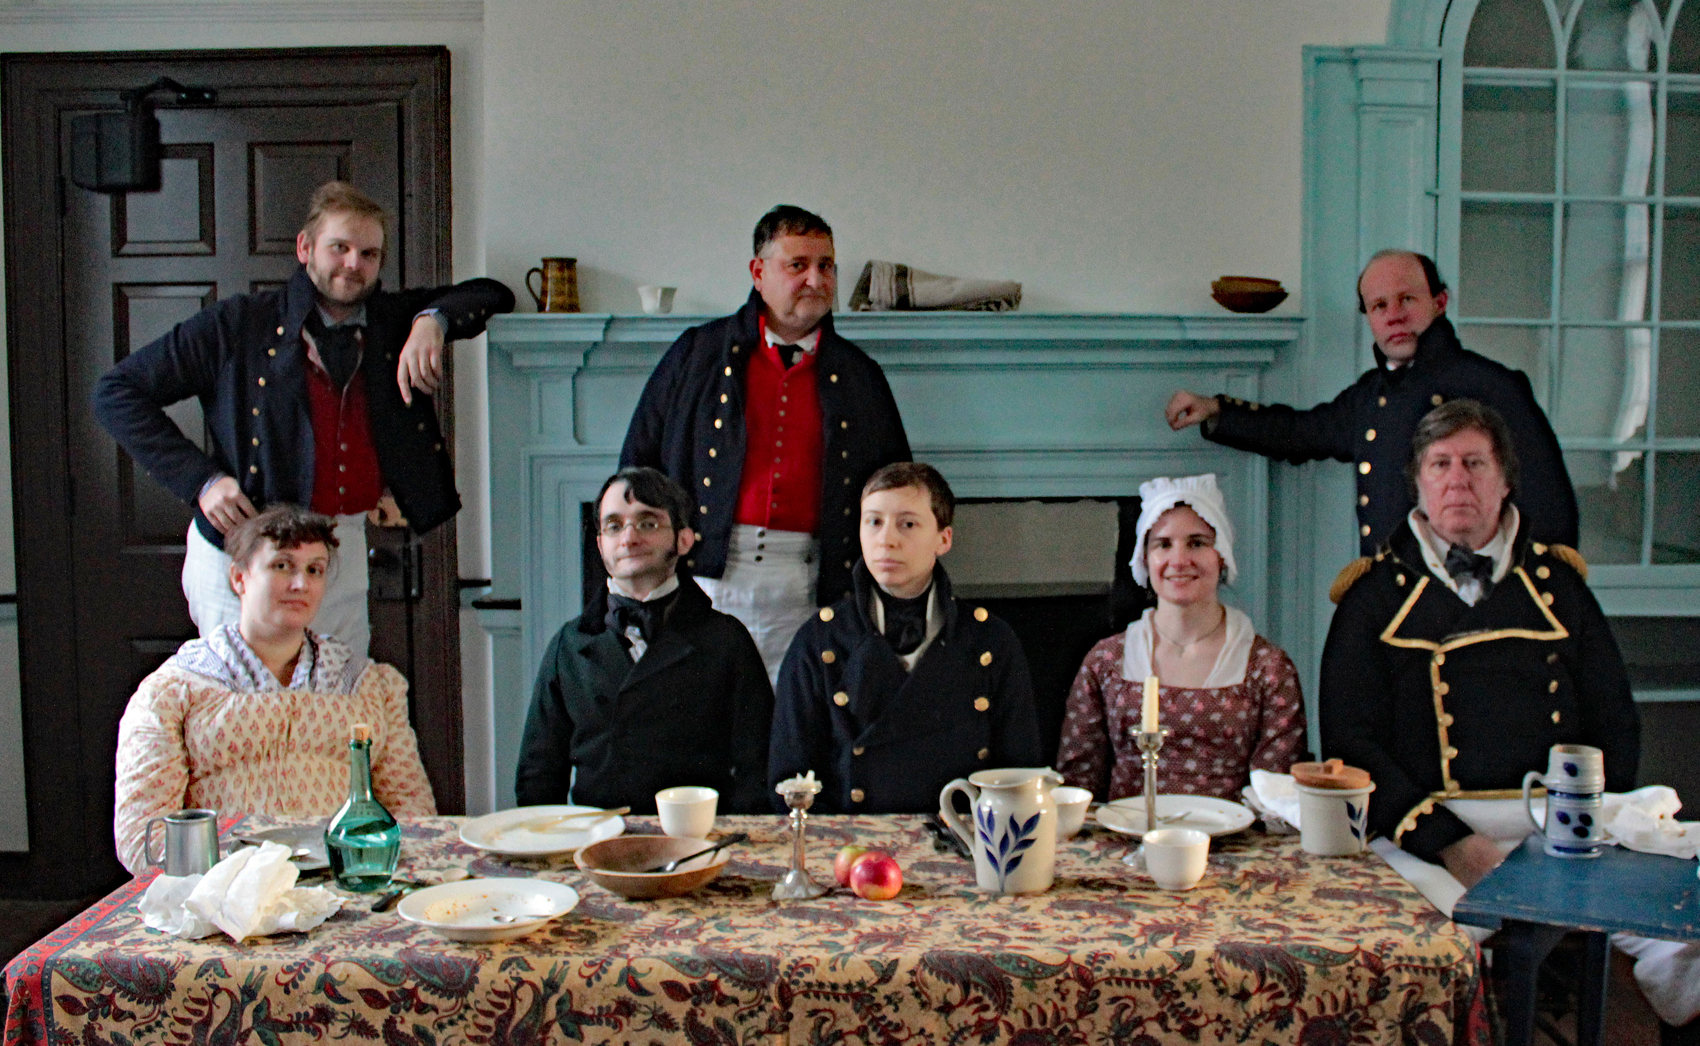 A Ship's Company crew sits around a dinner table at a re-enactment